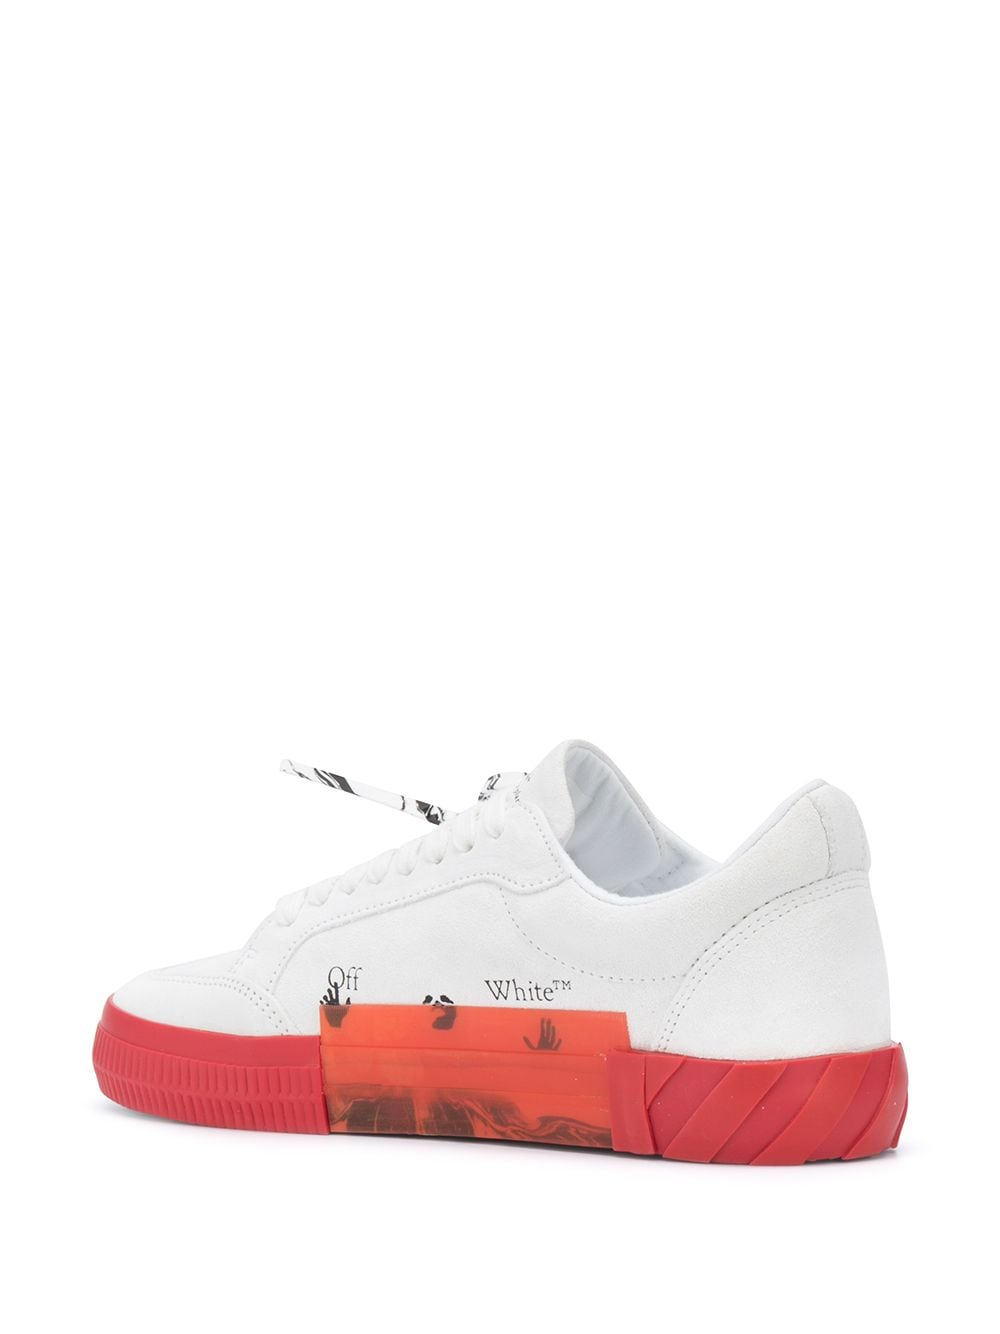 OFF-WHITE MEN LOW VULCANIZED LEATHER SNEAKERS